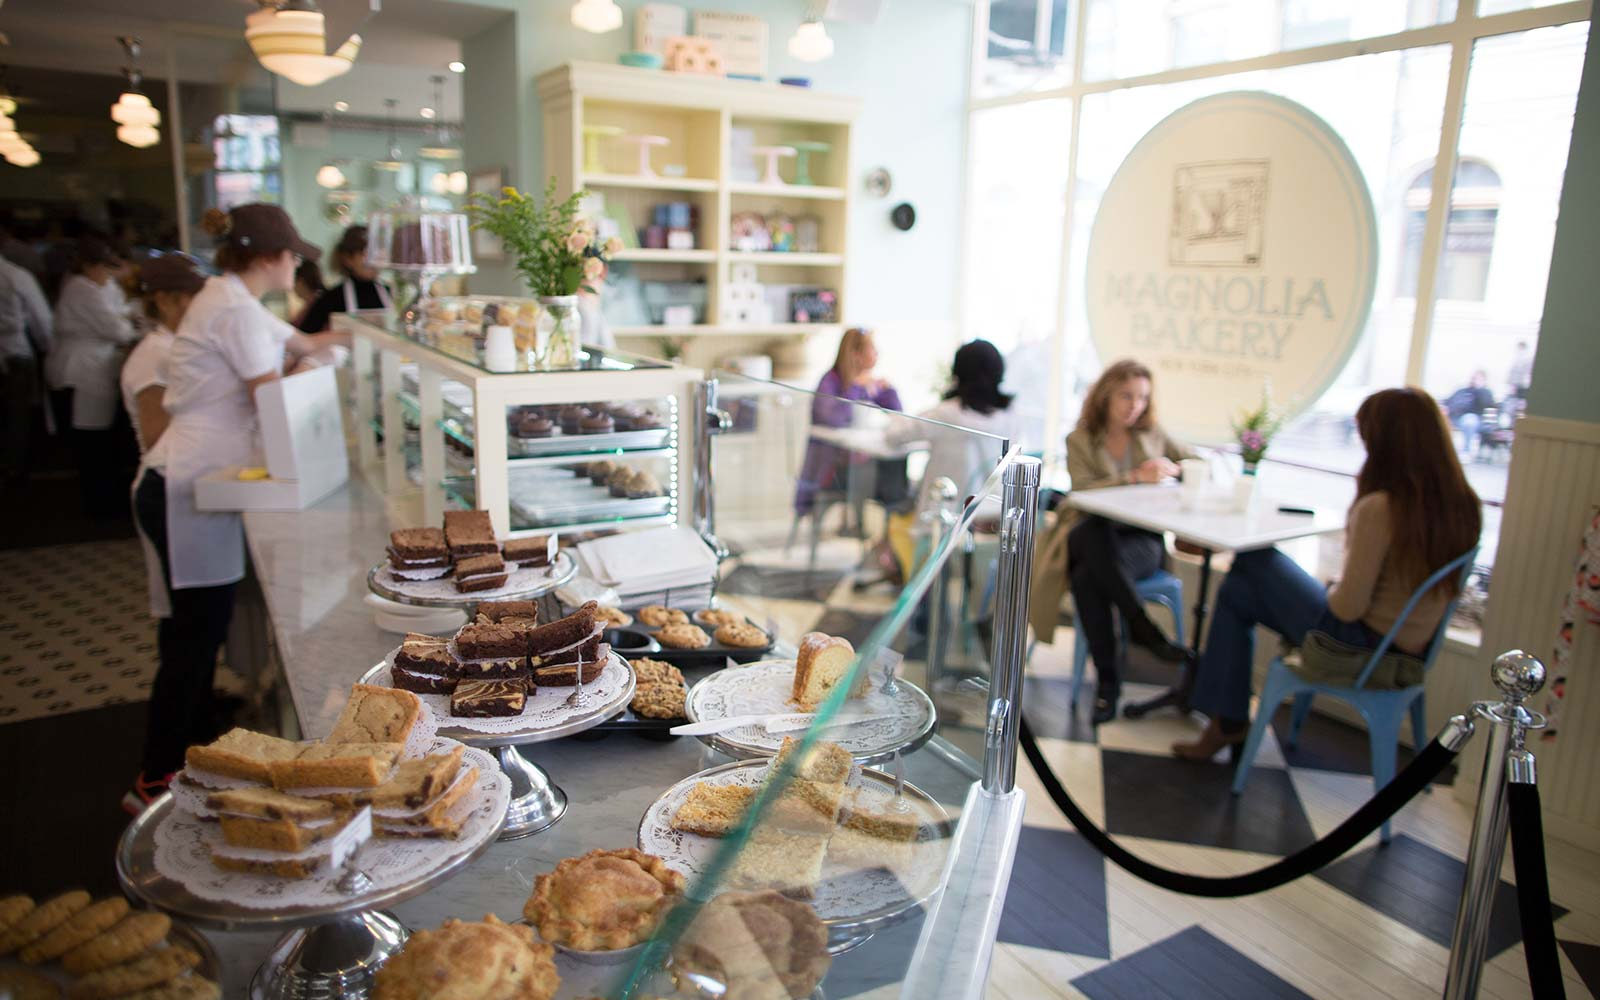 Magnolia Bakery, the New York cupcake maker made famous by its appearance on the